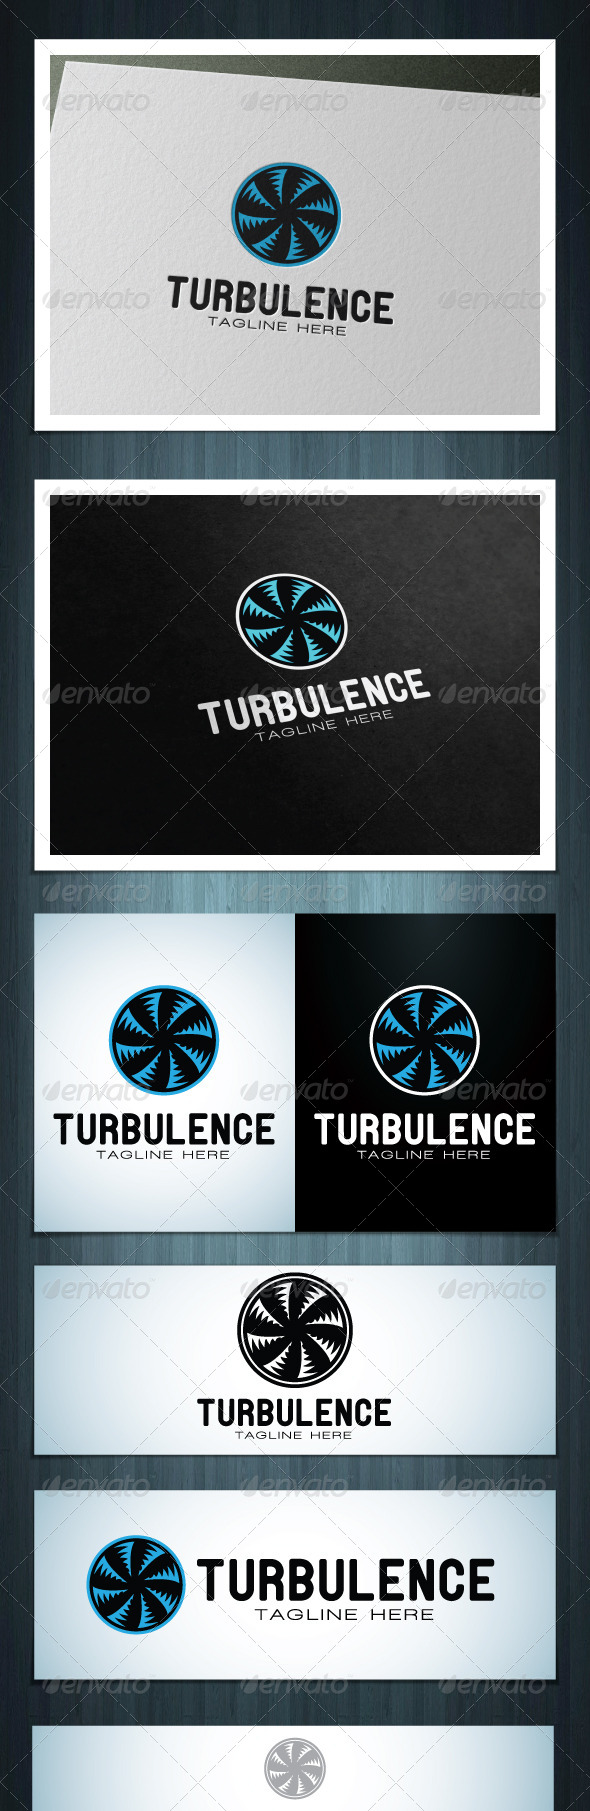 GraphicRiver Turbulence 5934410